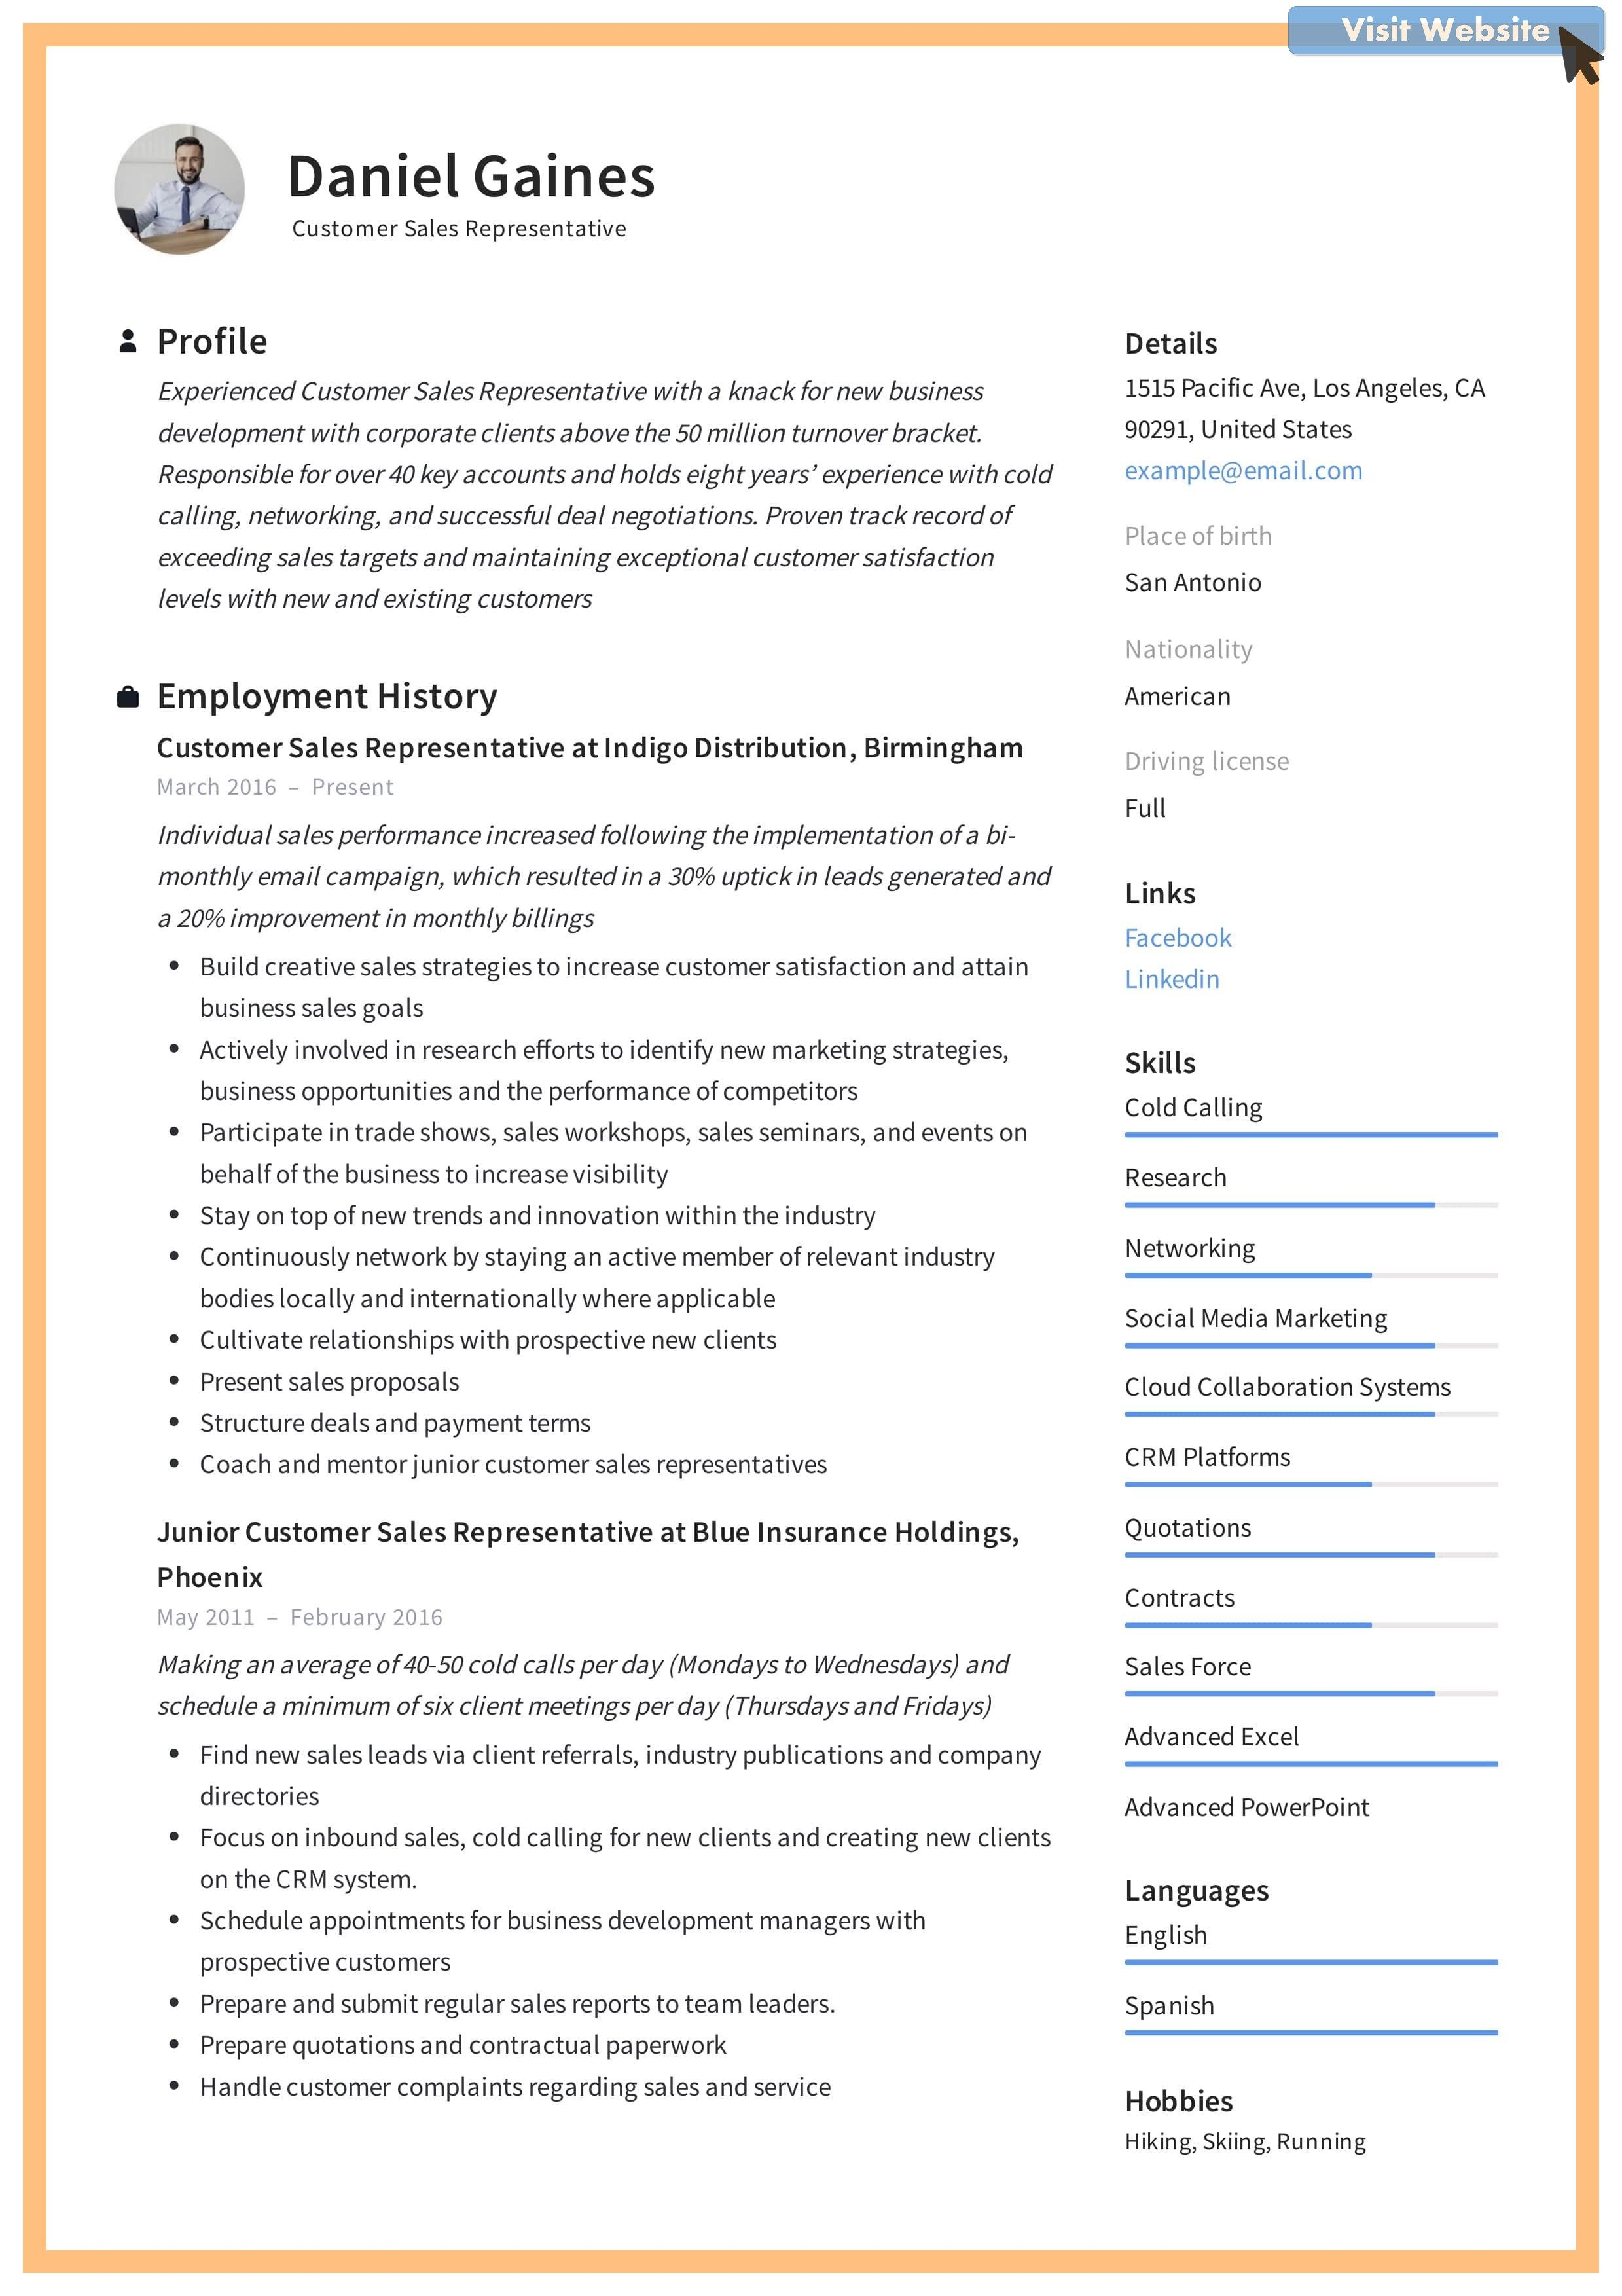 Customer Service Resume Template Free In